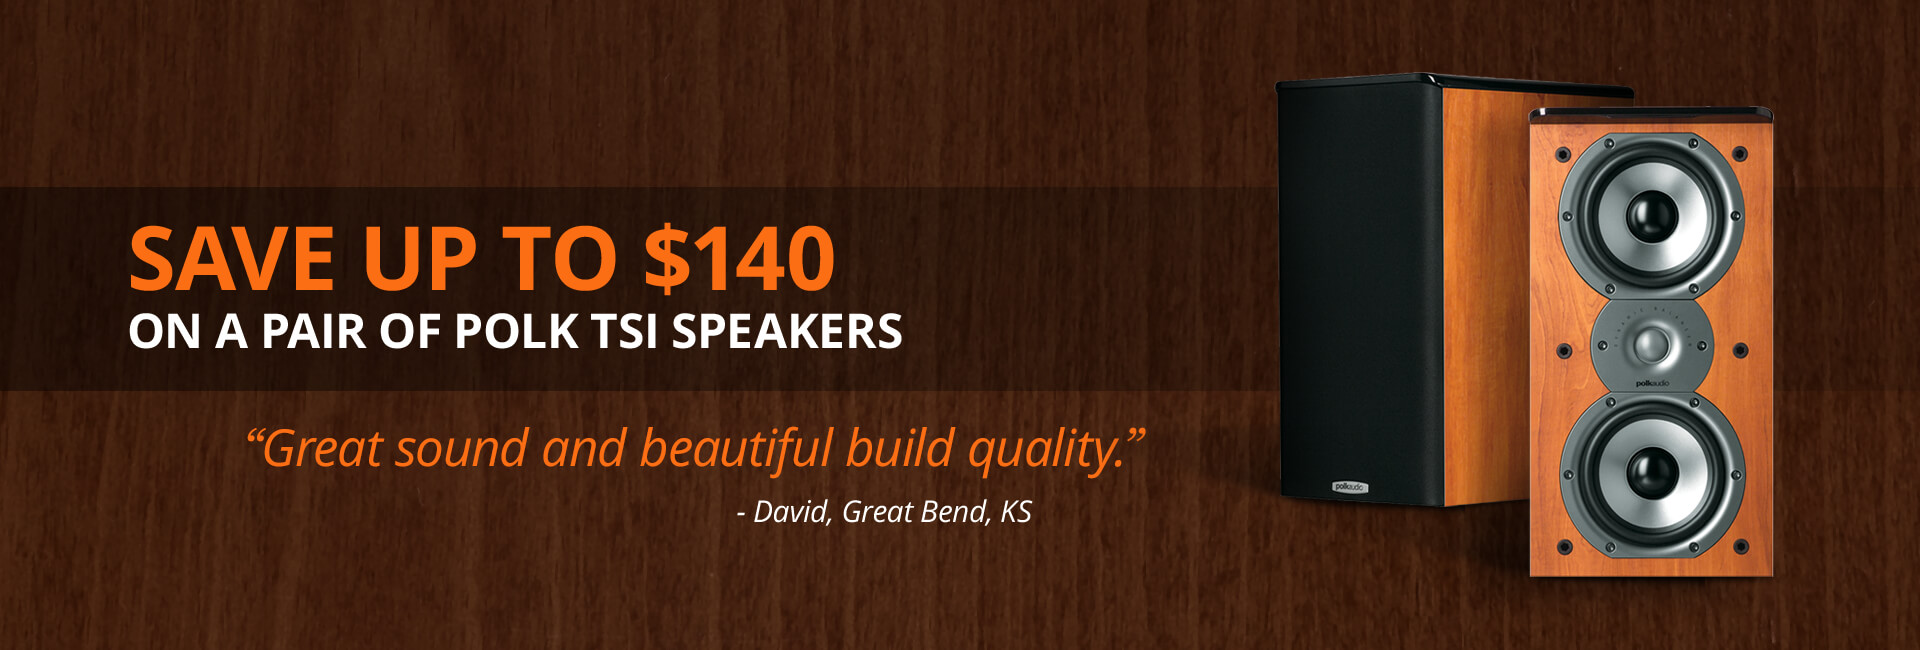 Save up to $140 on a pair of Polk Tsi speakers